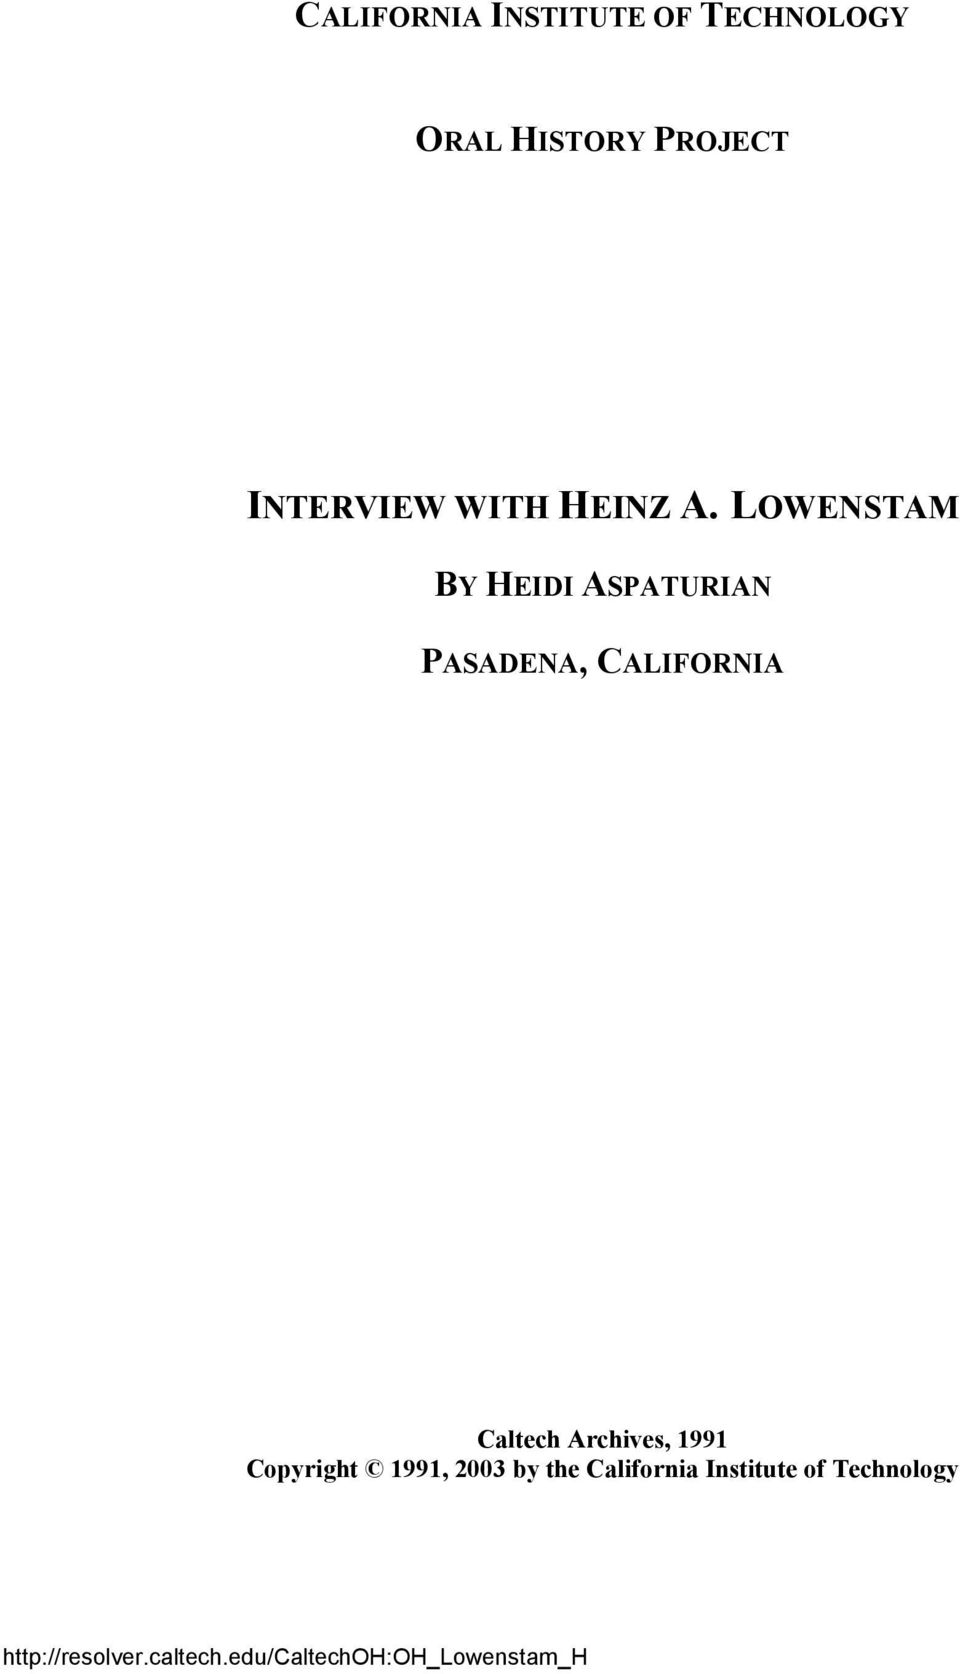 LOWENSTAM BY HEIDI ASPATURIAN PASADENA, CALIFORNIA